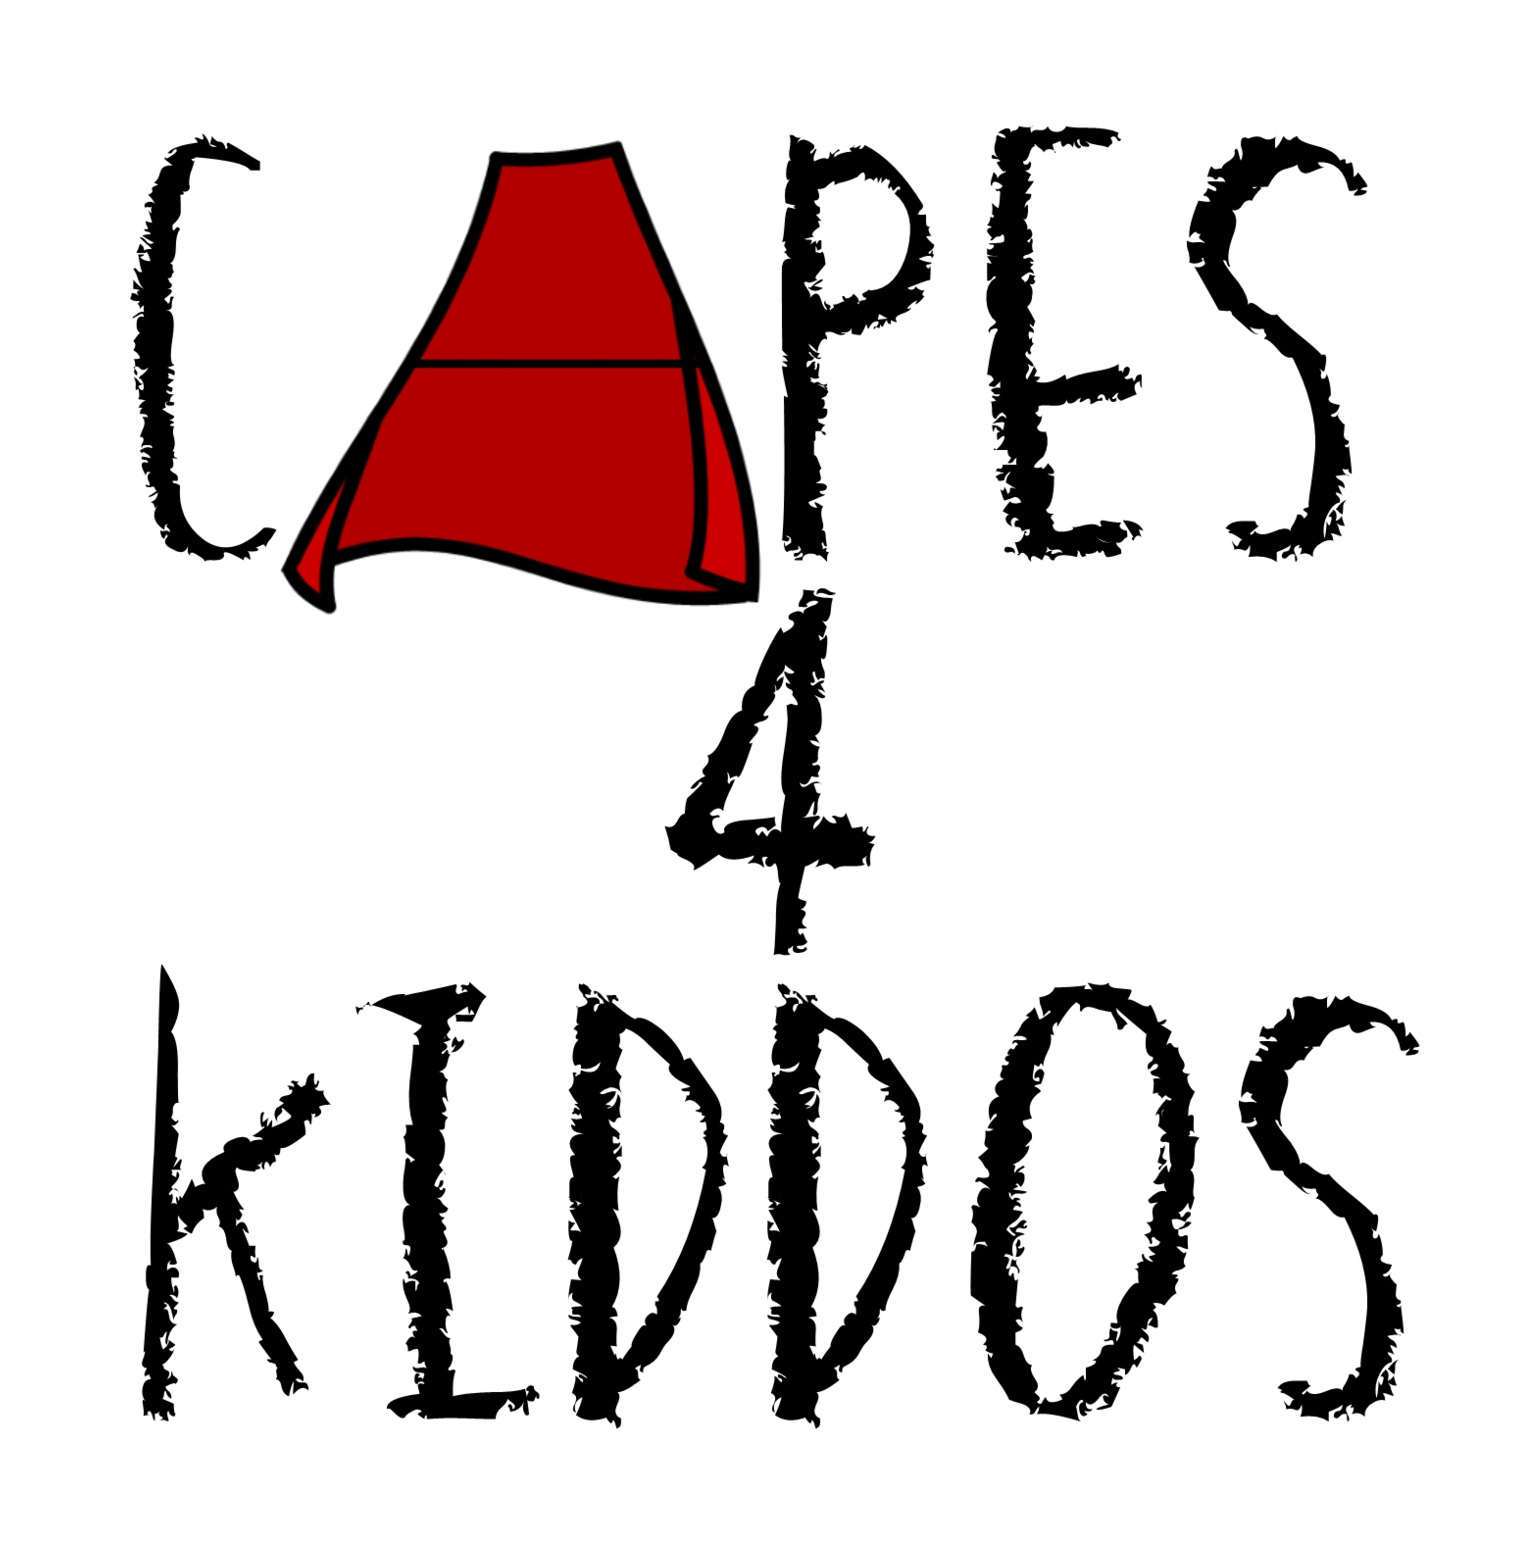 See why everyone's so excited about Capes 4 Kiddos!